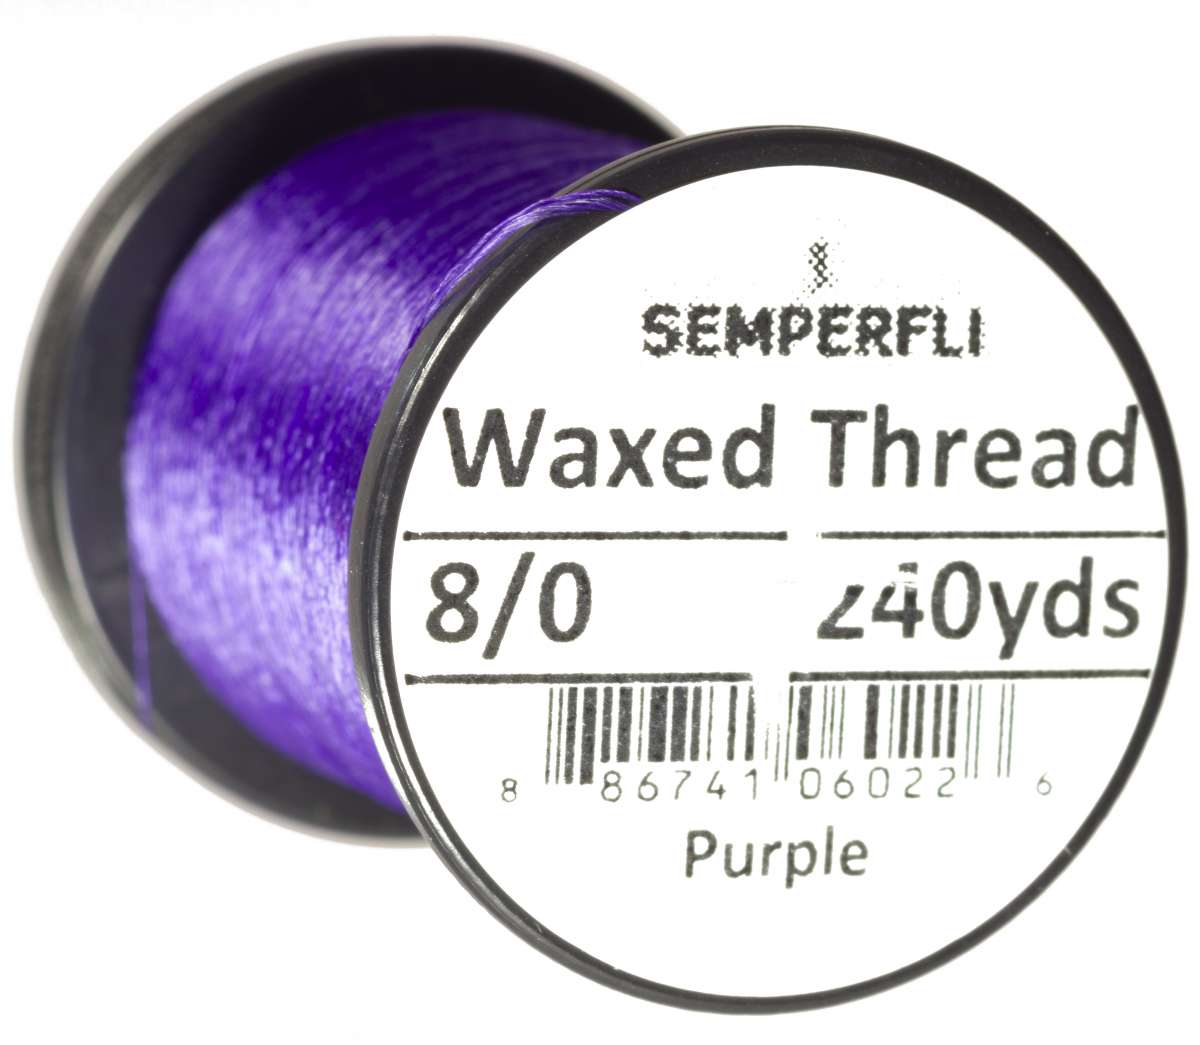 8/0 Classic Waxed Thread Purple Sem-0400-1753 (2)